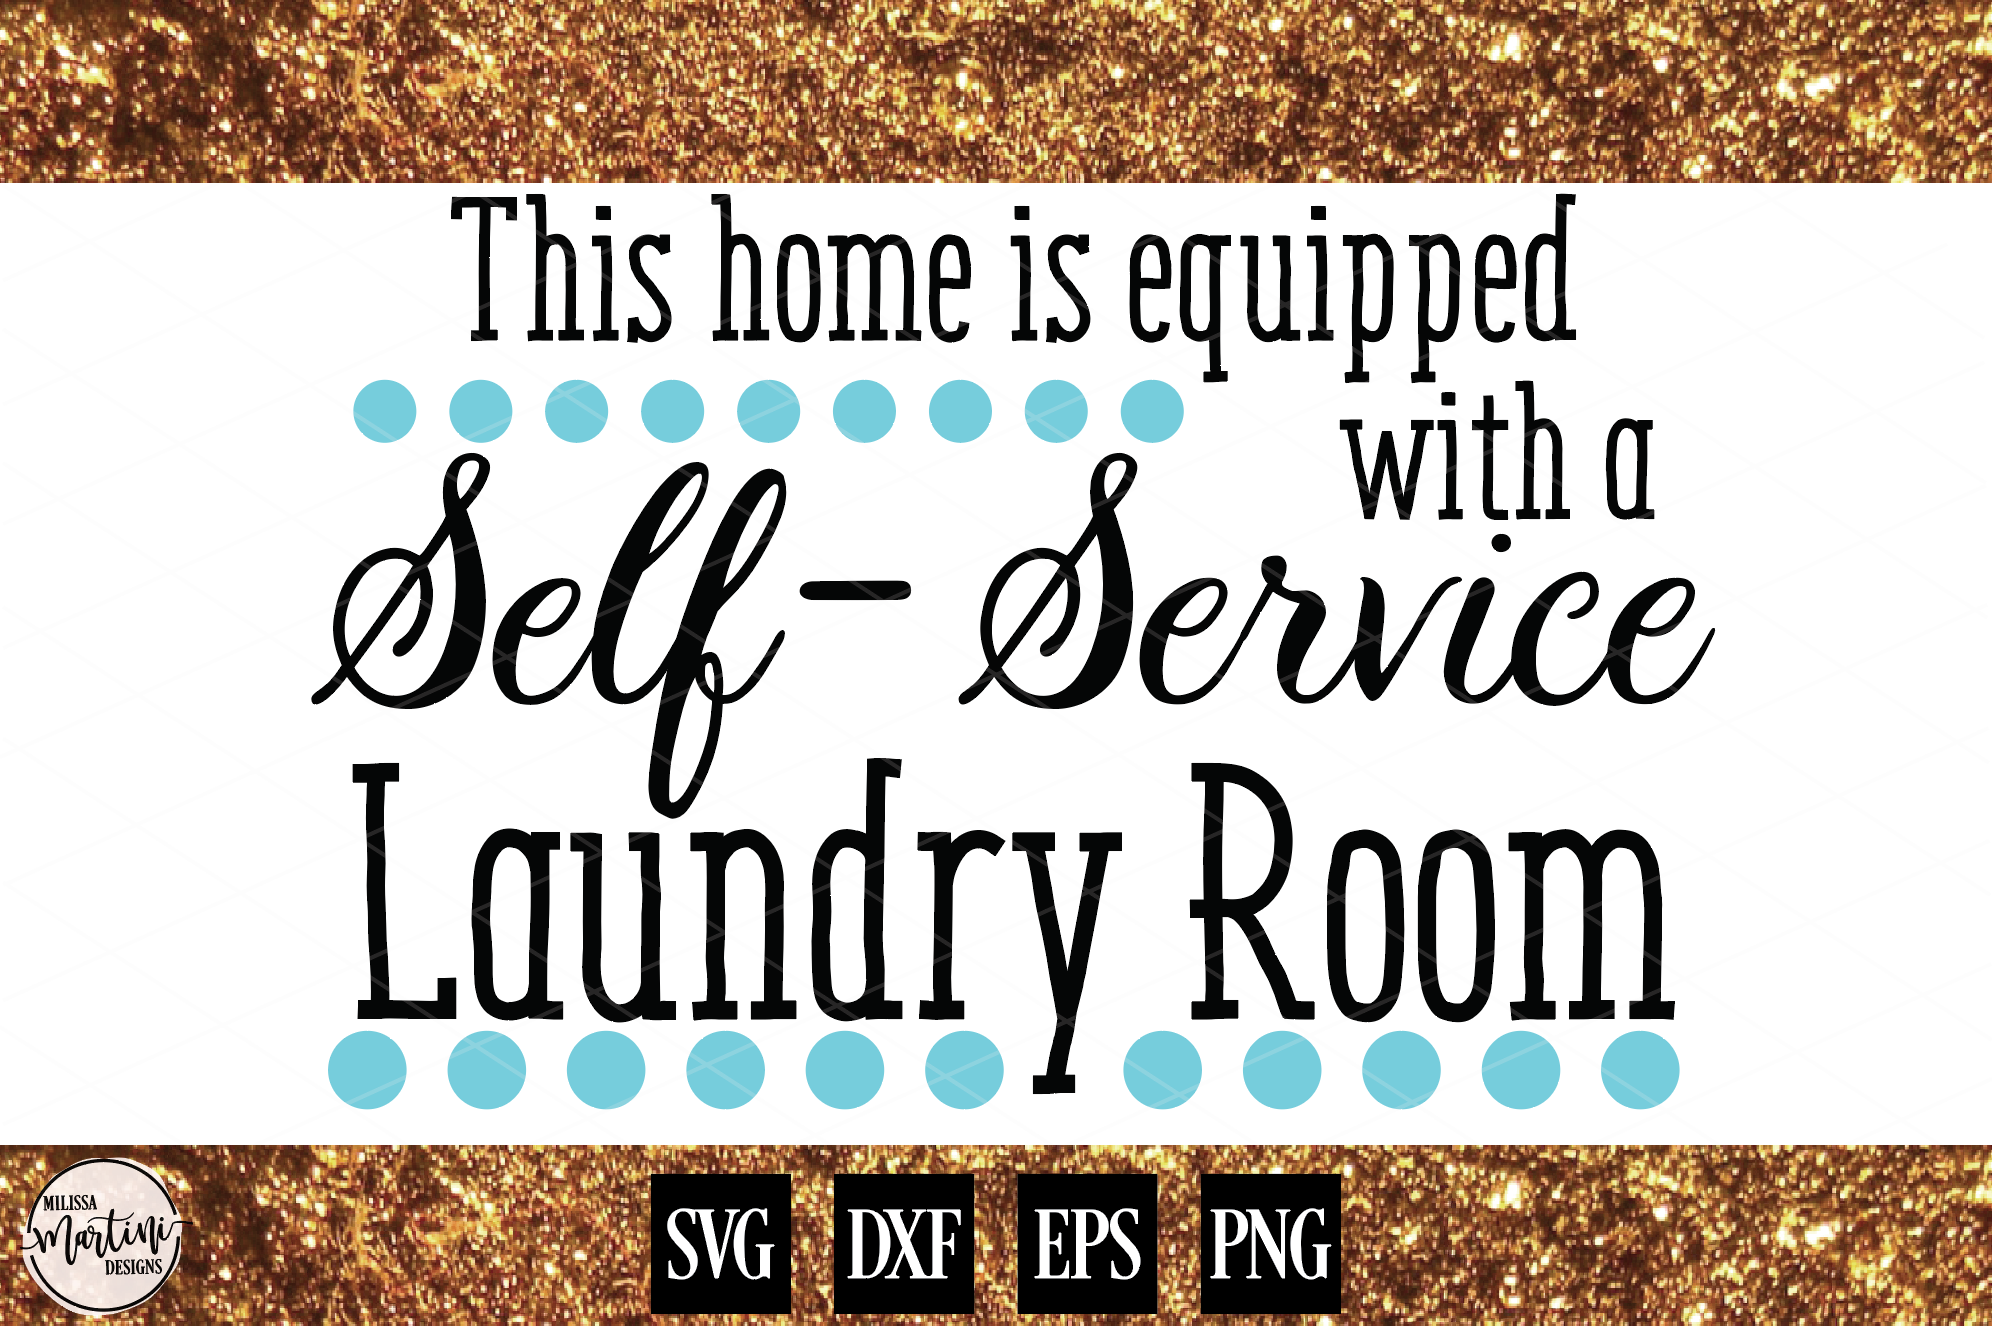 Self Service Laundry Room example image 1